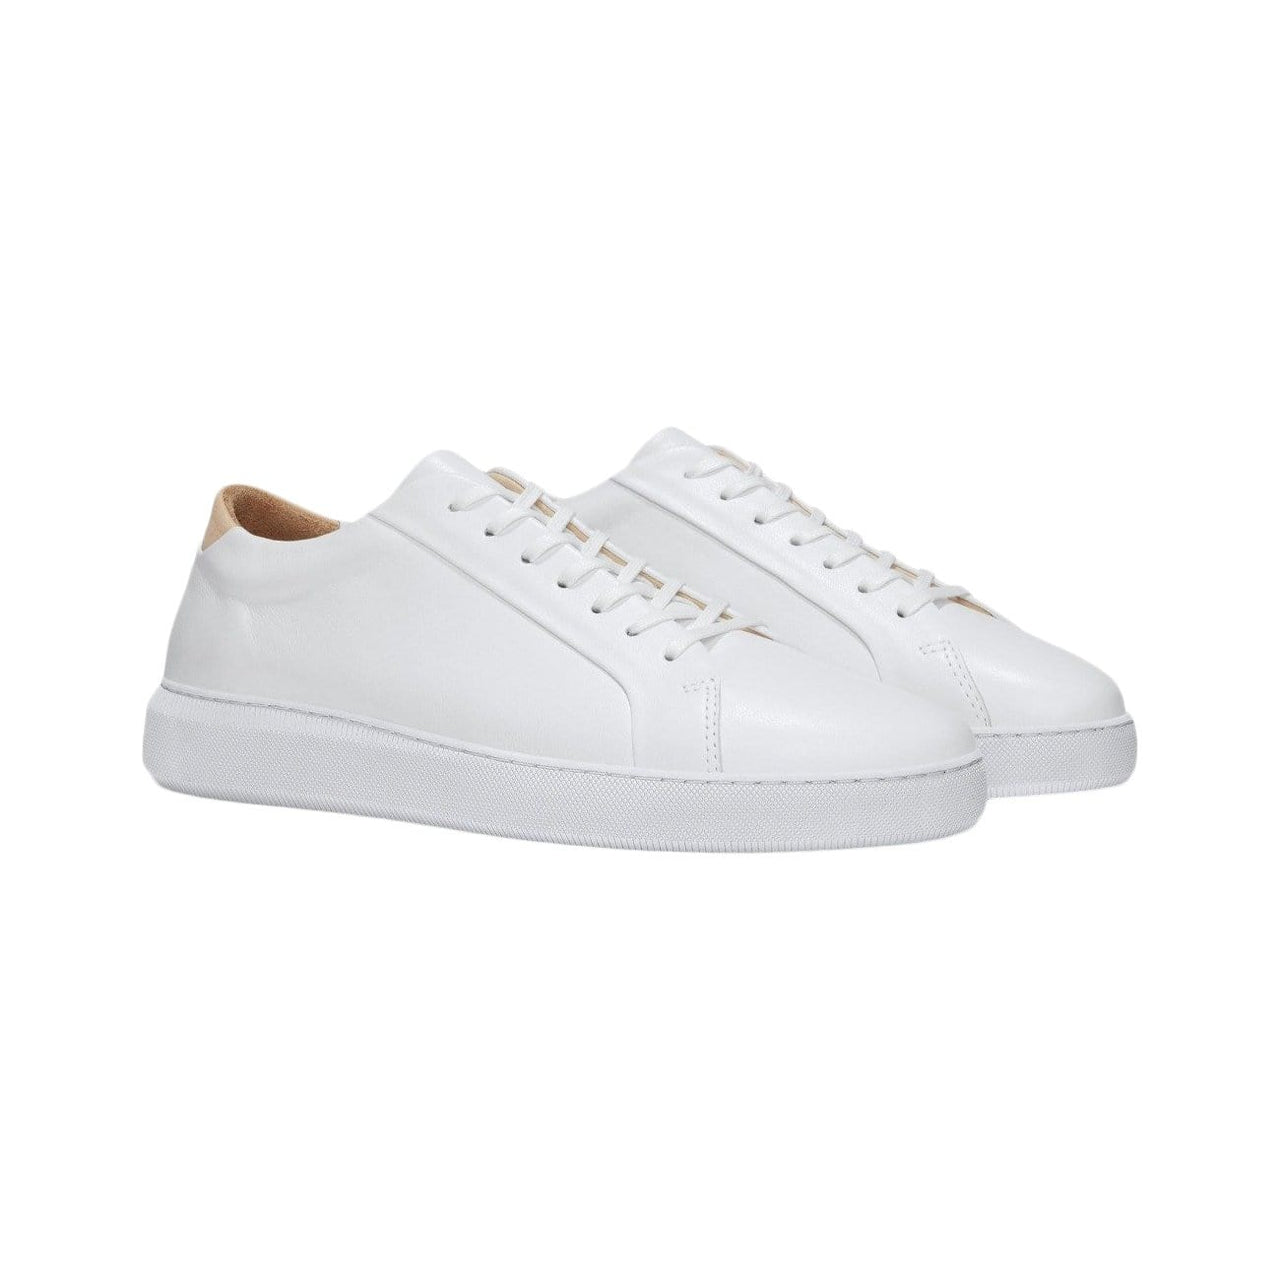 UNIFORM STANDARD Footwear Women's SERIES 8 White Leather Sneaker